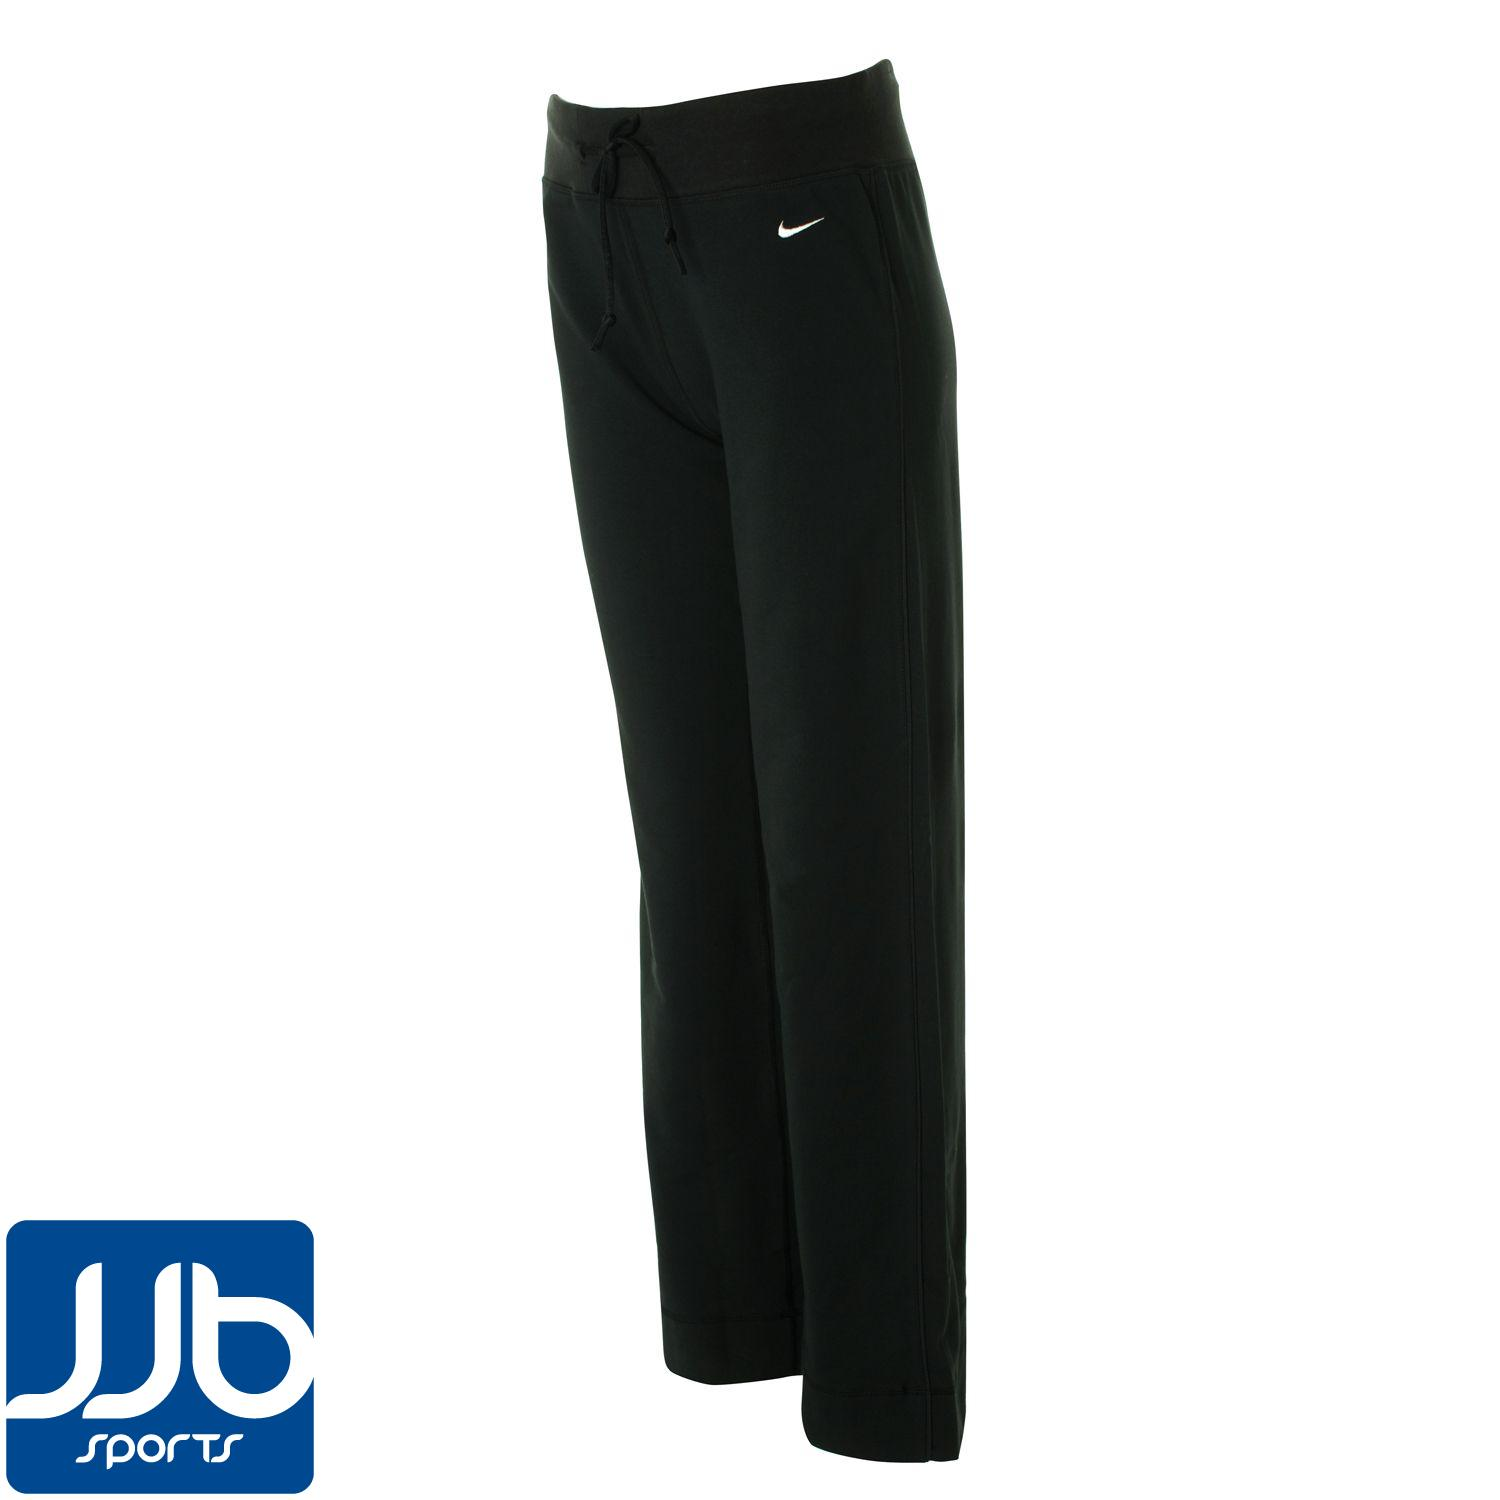 Creative Off Nike Pants  SALEWomen39s Nike Drifit Black Drawstring Pant